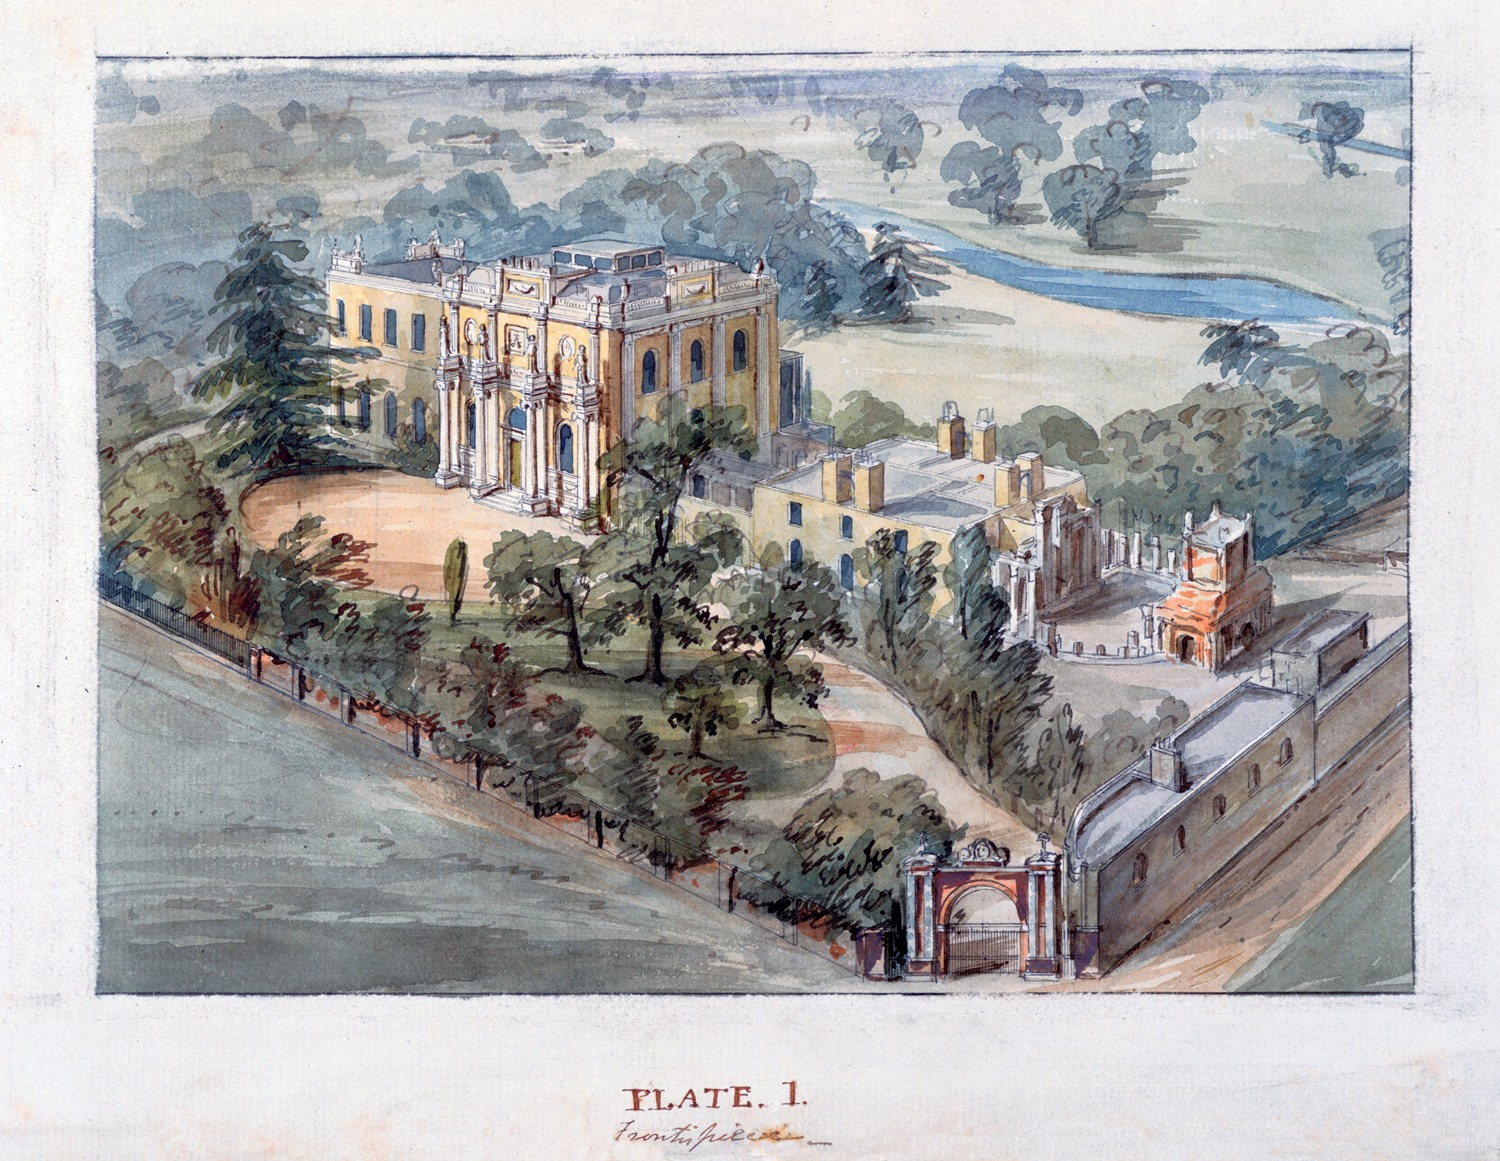 Bird's-eye view of Pitzhanger Manor